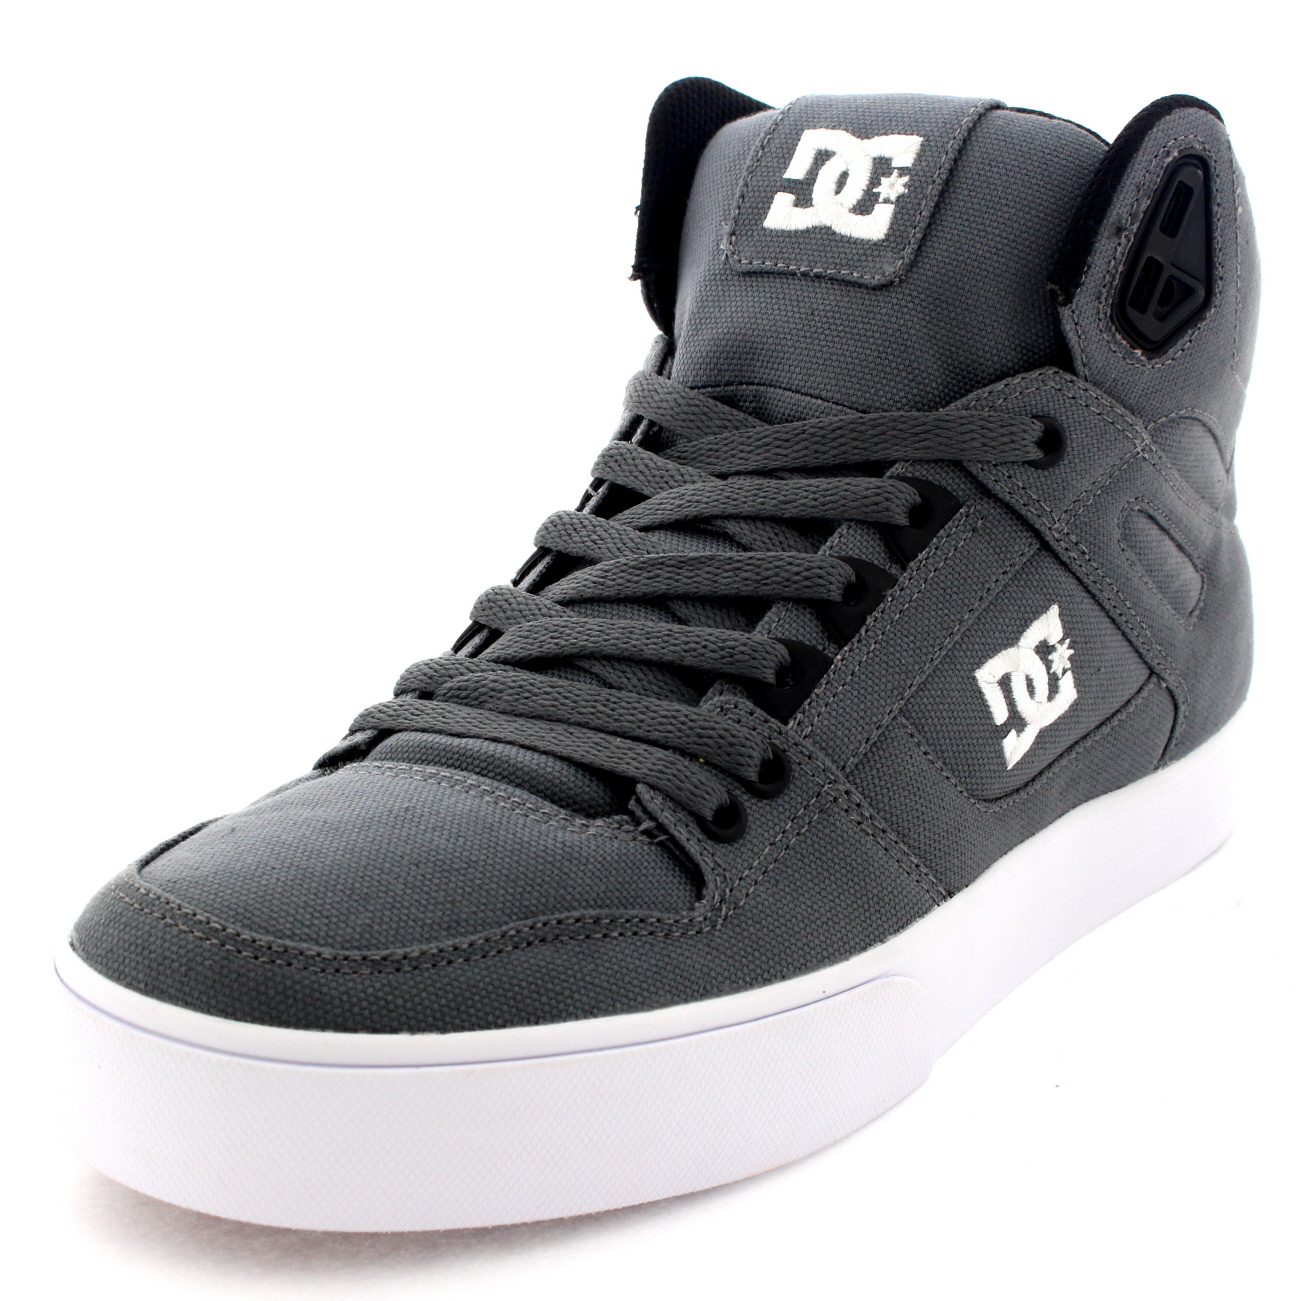 Spartan Dc Shoes